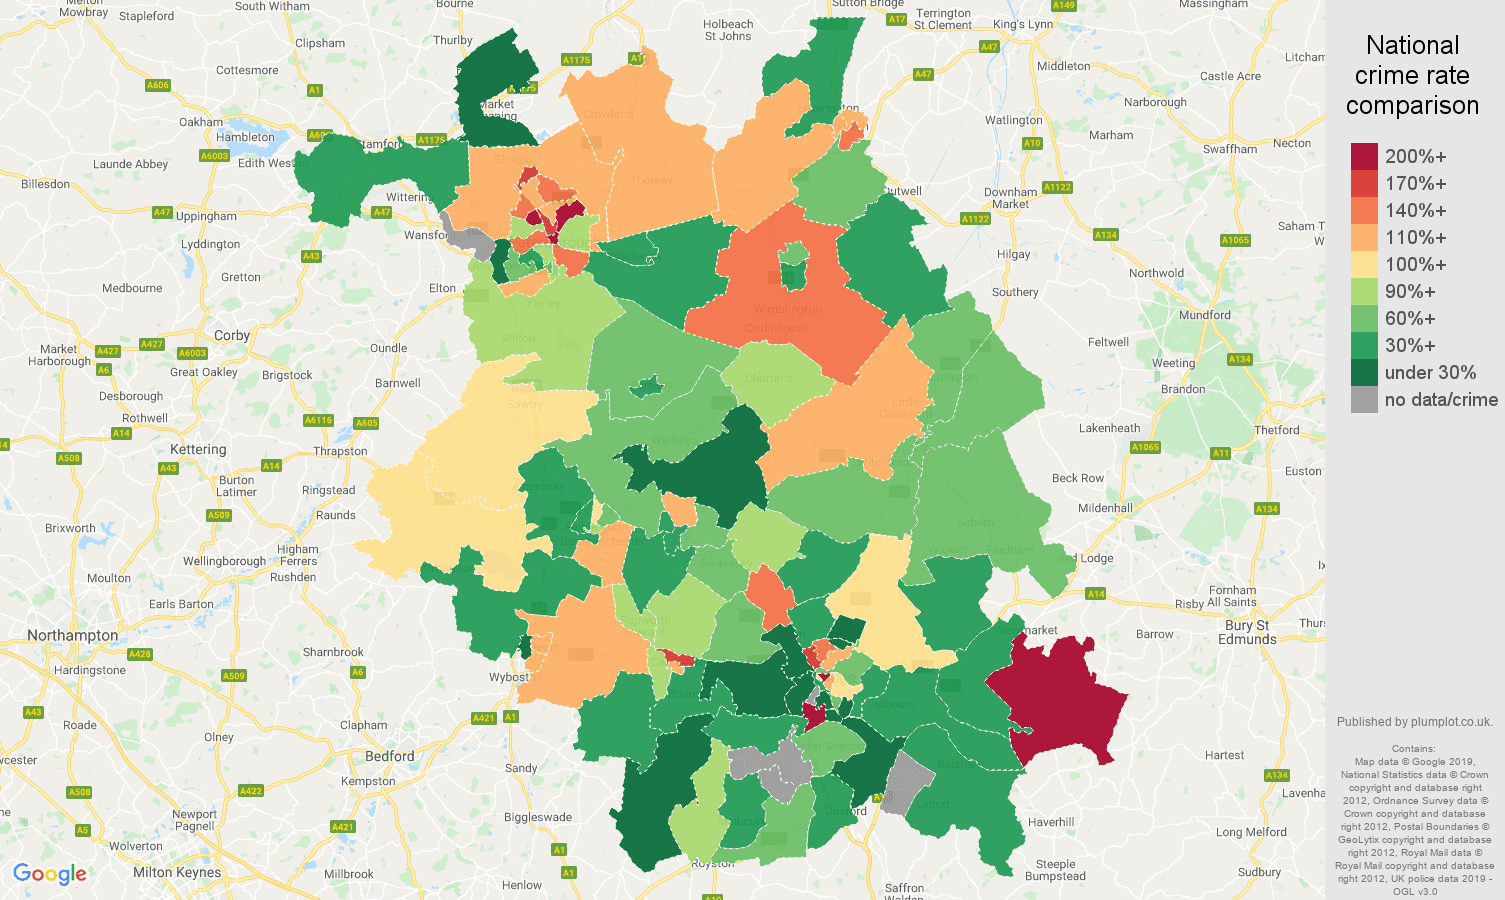 Cambridgeshire other crime rate comparison map